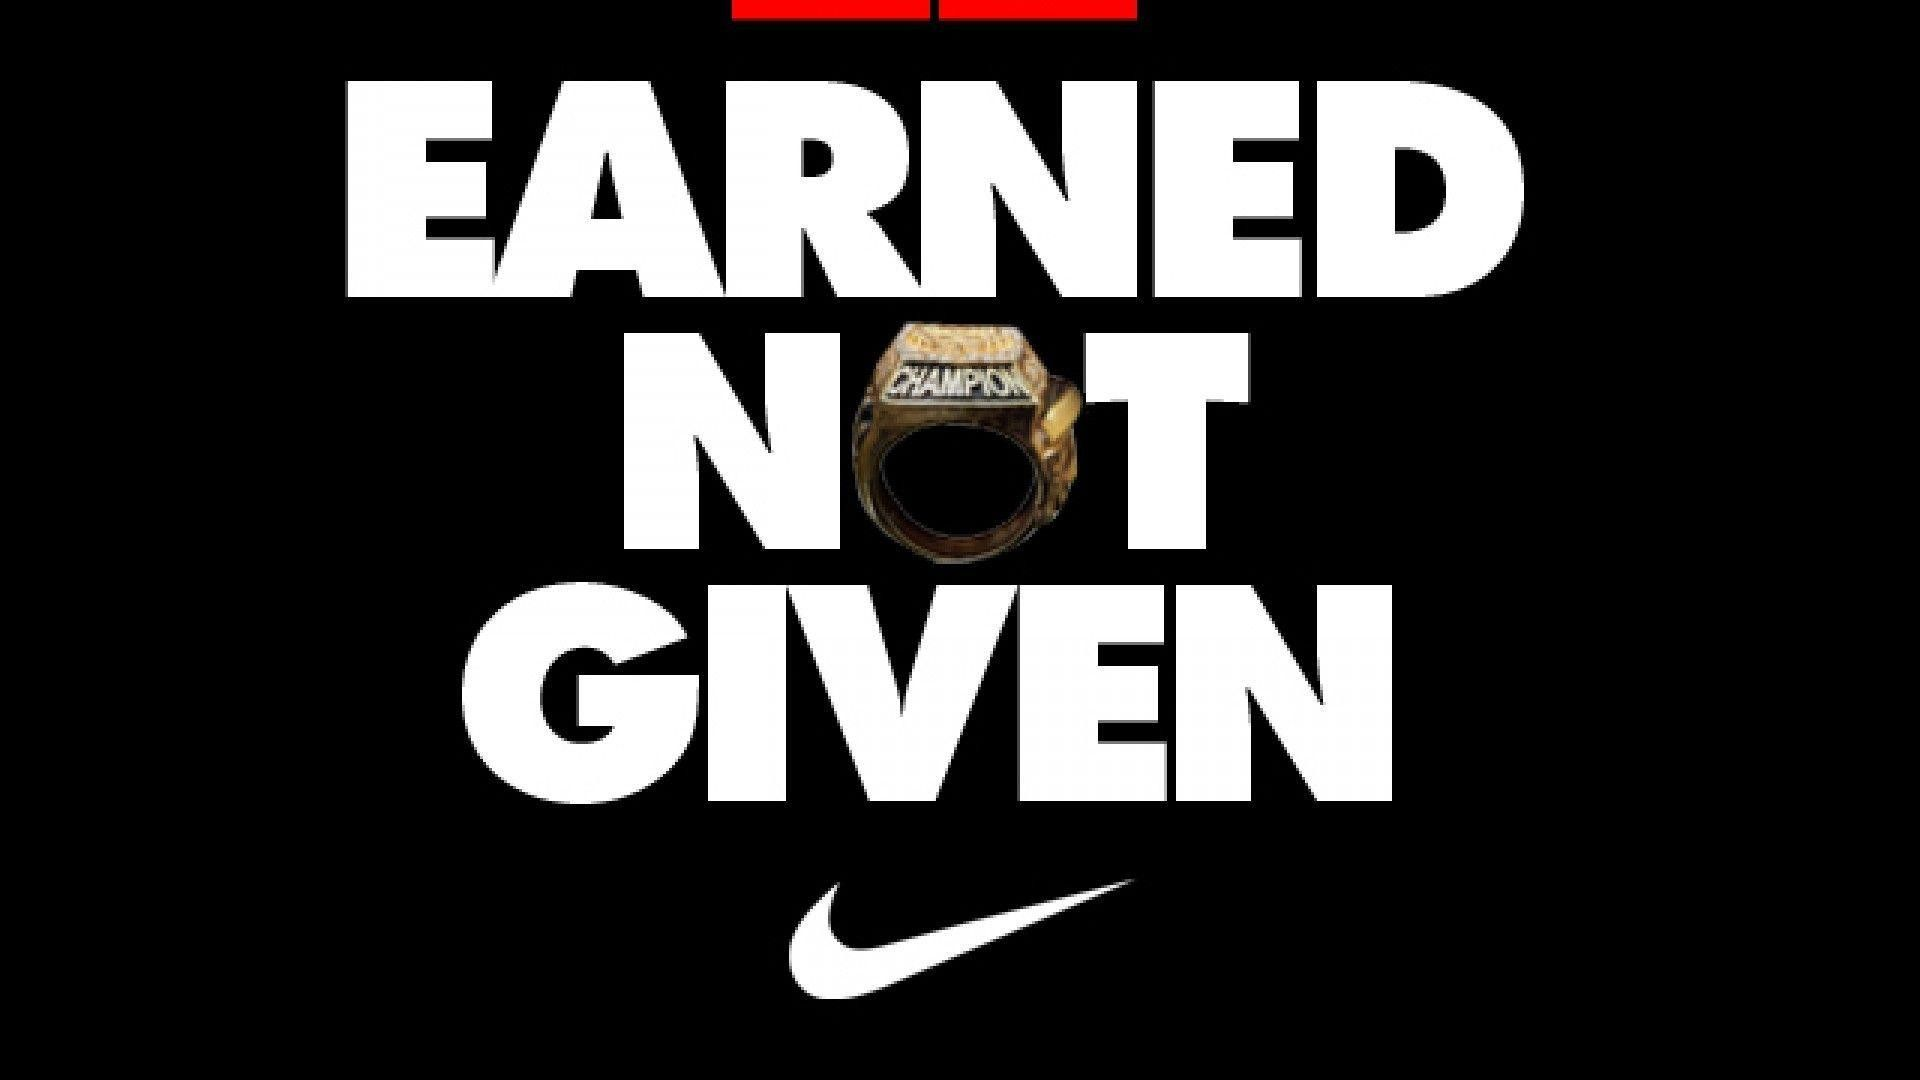 79 Motivation Nike Quotes Wallpaper Hd In 2020 Nike Quotes Sports Quotes Motivational Quotes For Athletes